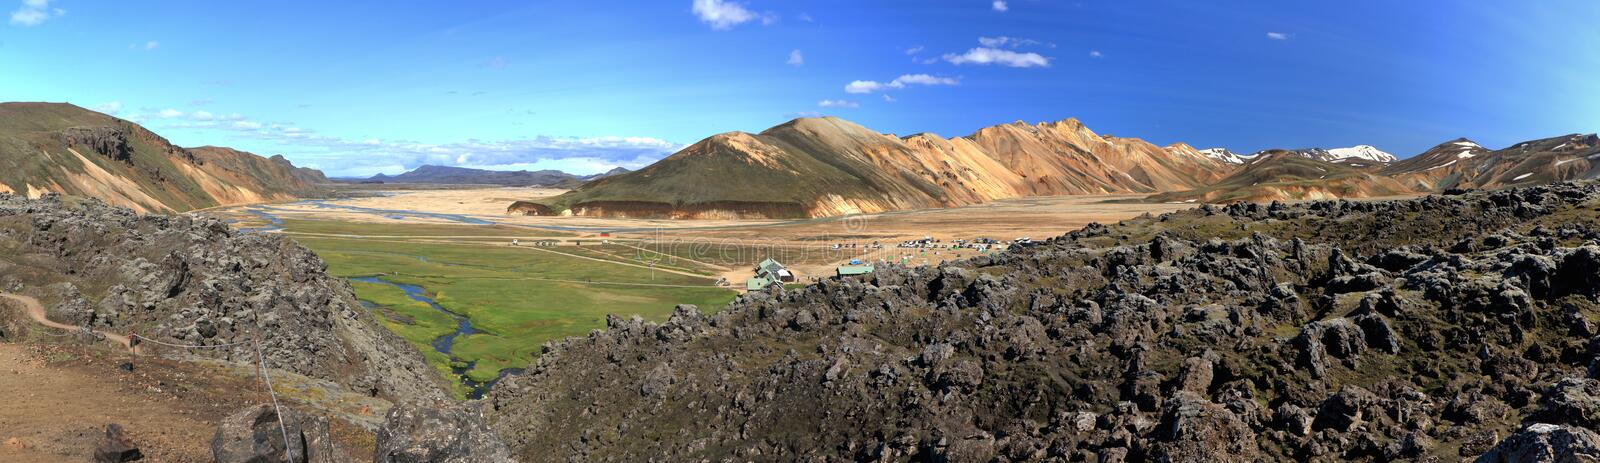 Obsidian Lavafield, Hot Spring and Colourful Mountains at Landmannalaugar, Central Iceland, Panorama. Panoramic views of the beautiful landscape at royalty free stock image